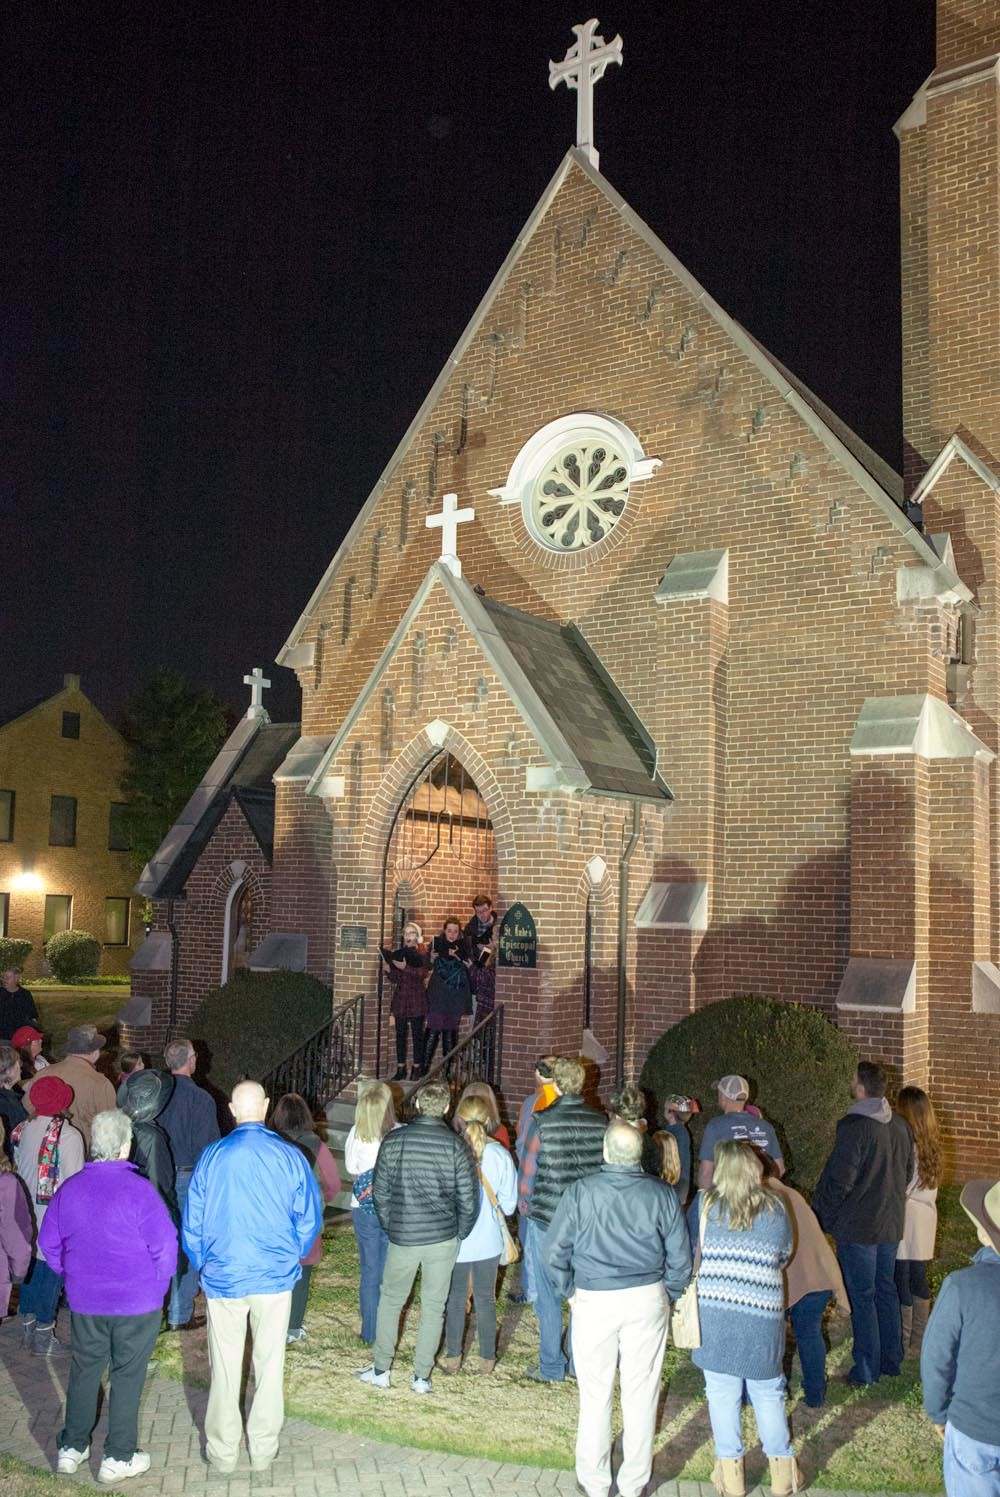 THE DOWNTOWN CHRISTMAS Tree Lighting attendees surround the entryway of St. Luke's Episcopal Church to listen to more carols.